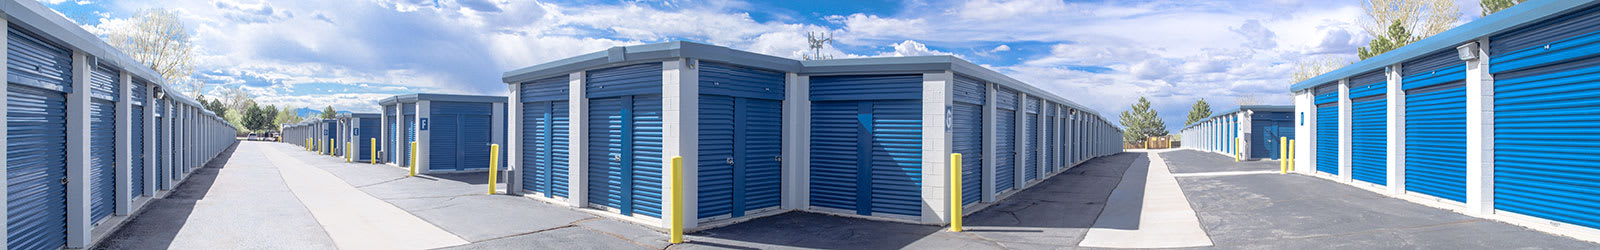 Contact Security Self Storage